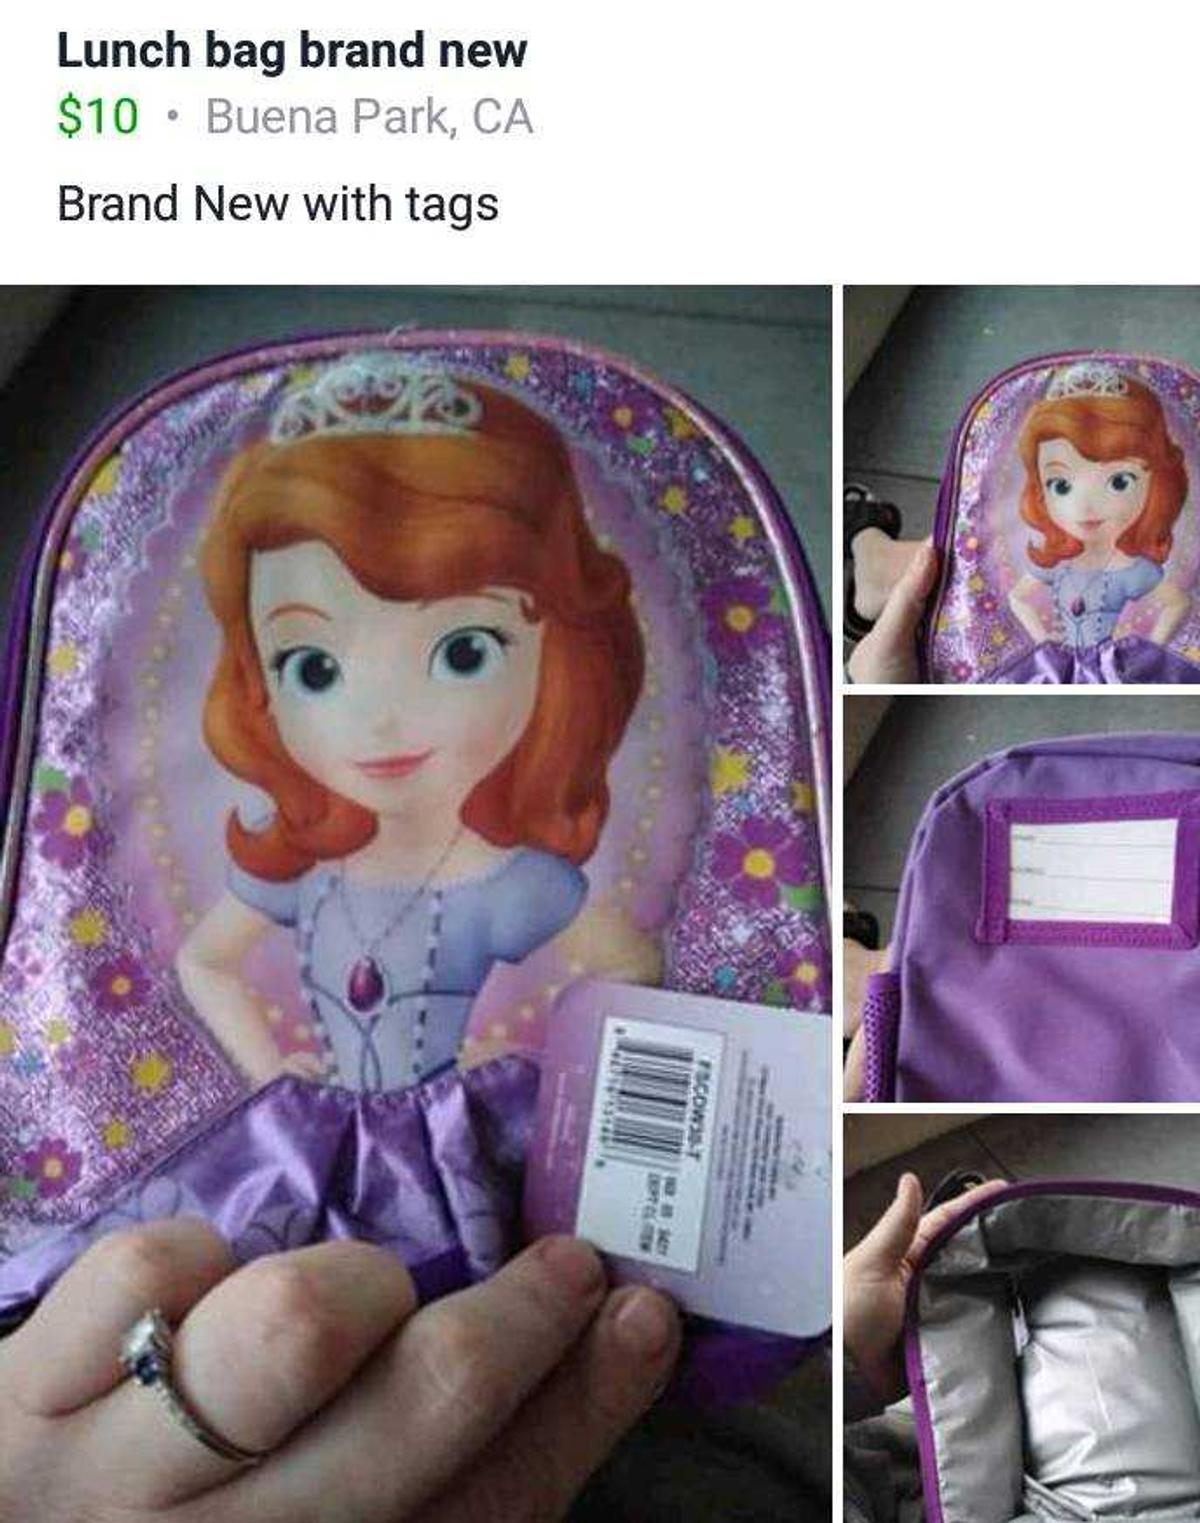 Sofia the first brand new with tags